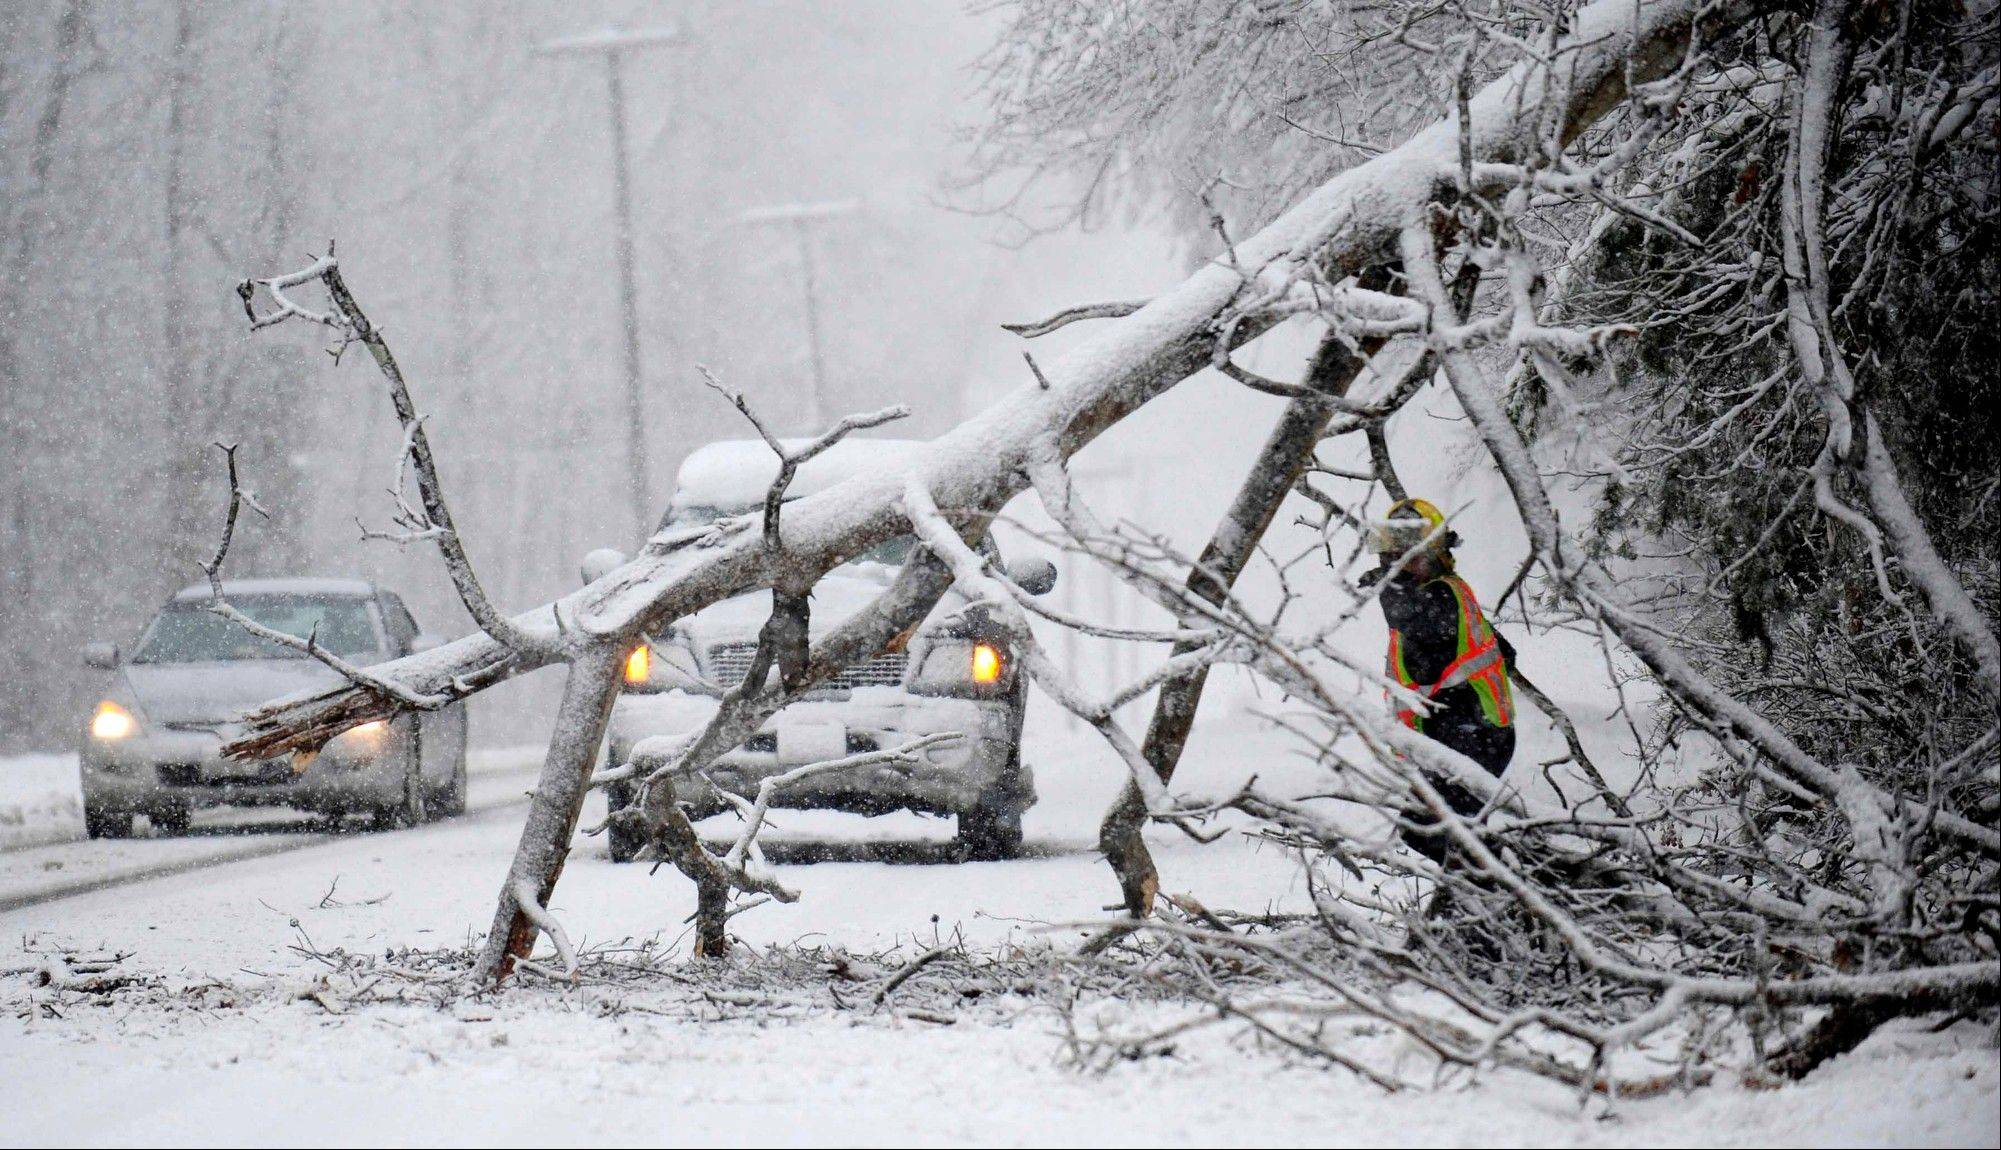 Volunteers remove a downed tree on the road near Chancellorsville, Va. A snowstorm blanketed the Fredericksburg region on March 6, 2013, closing schools, county governments and roads.